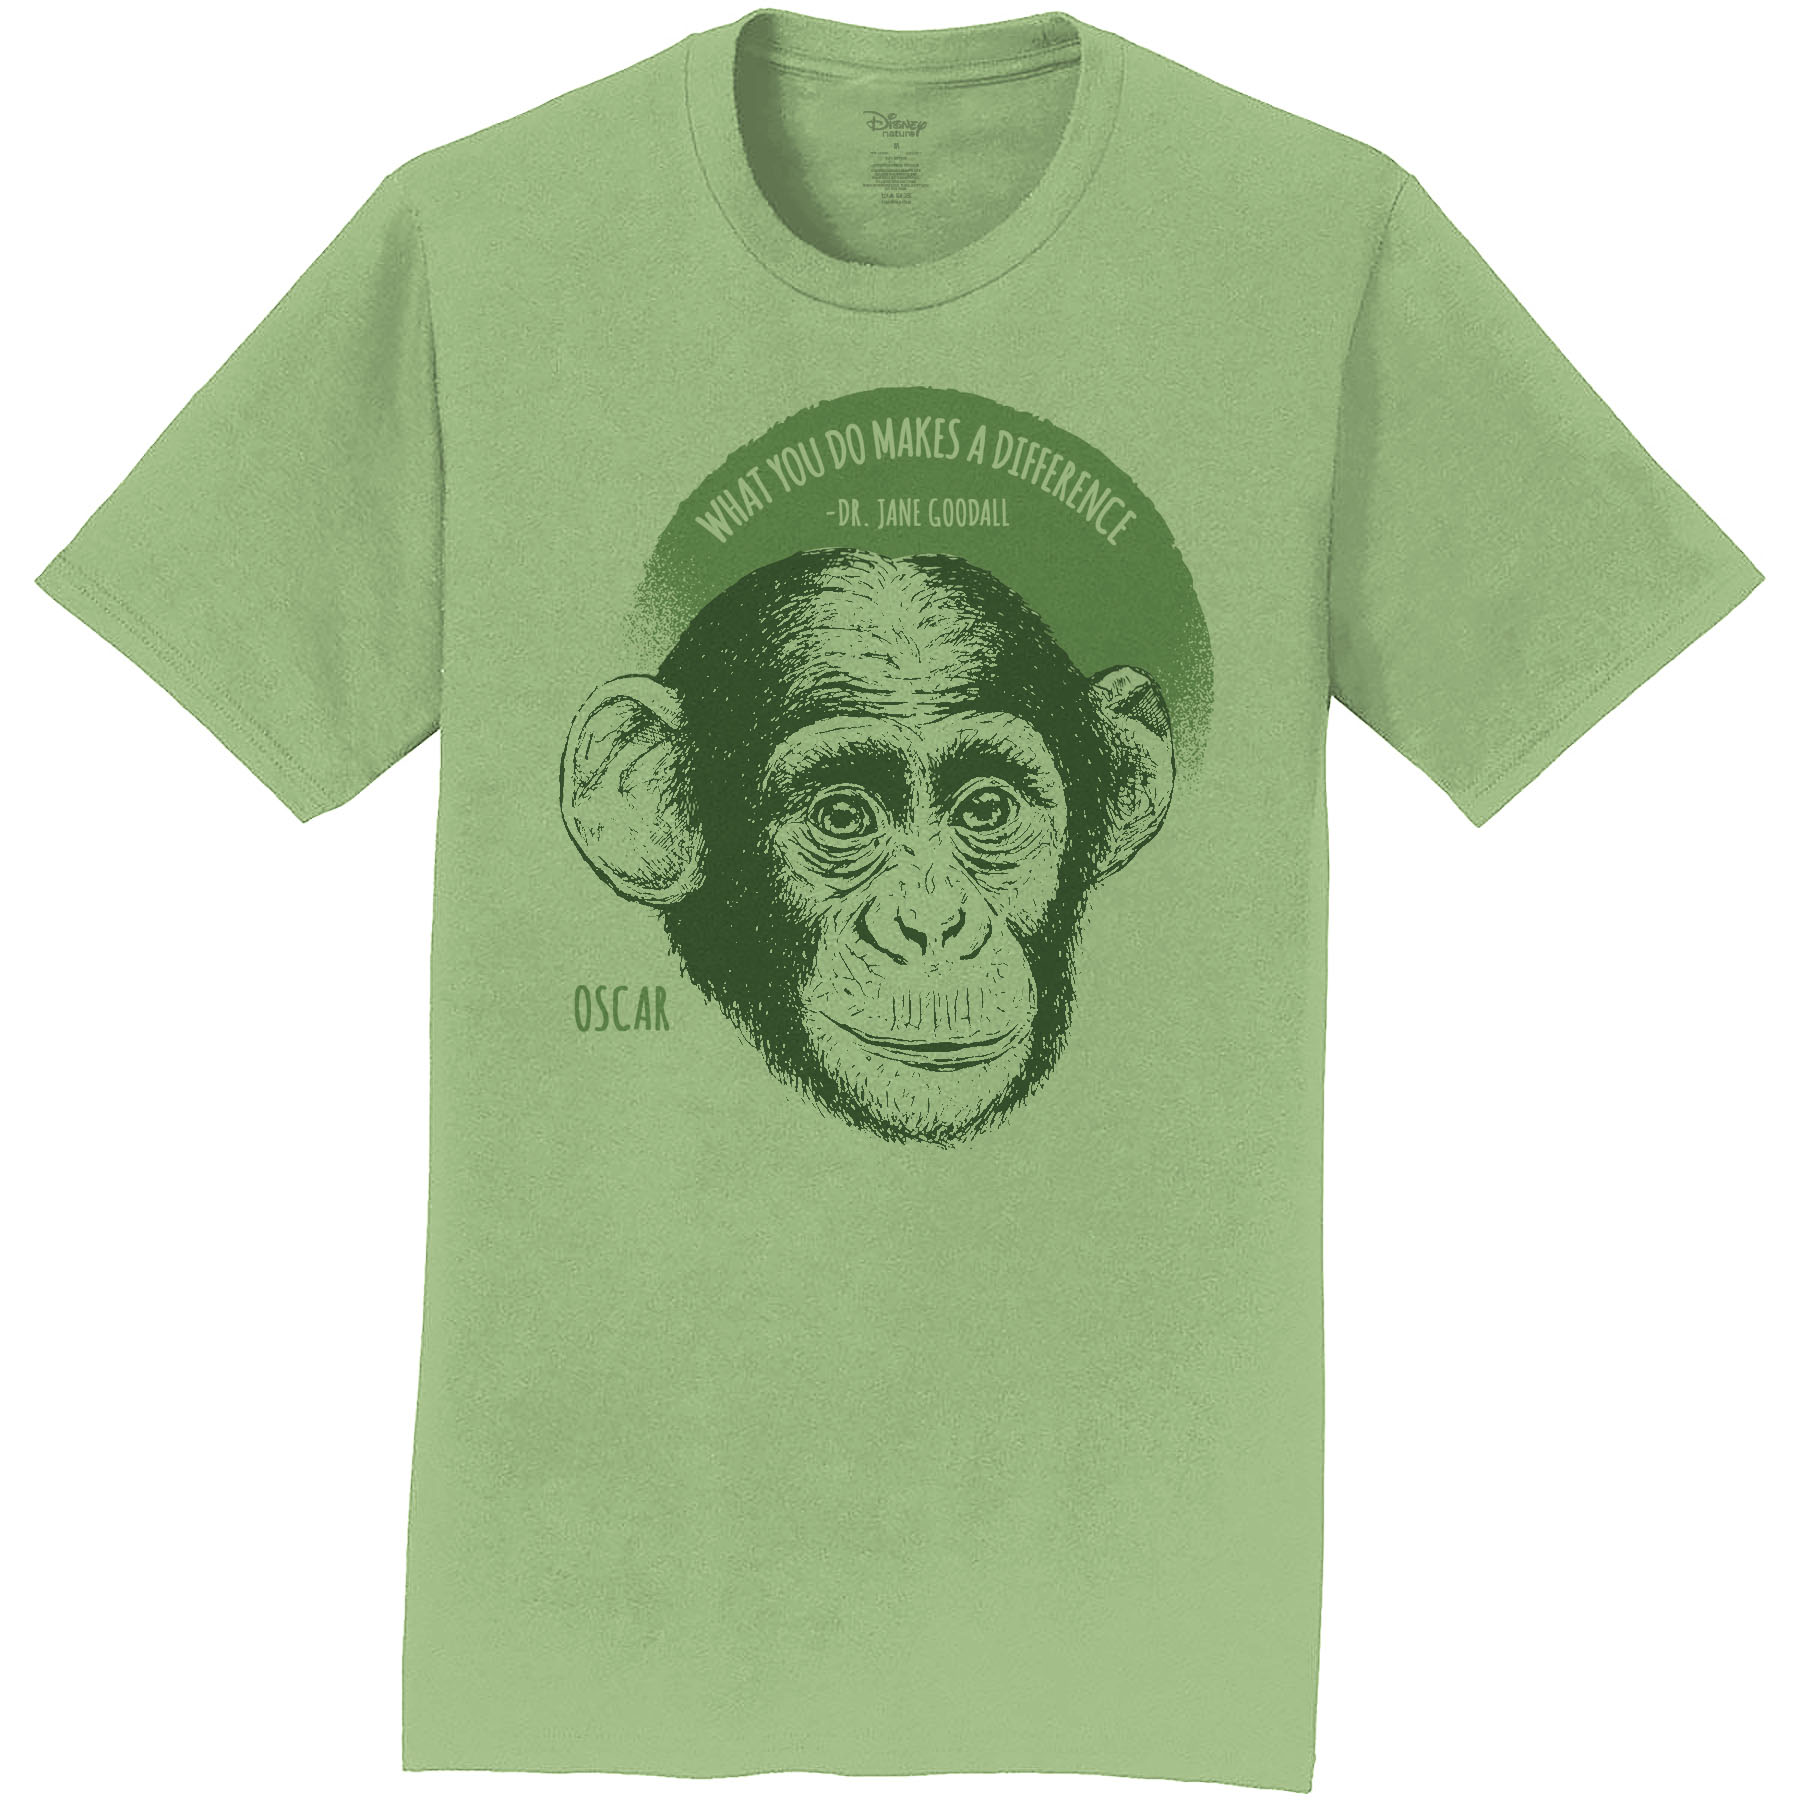 Disneynature + JGI  Oscar & Jane Goodall Quote Youth T-Shirt